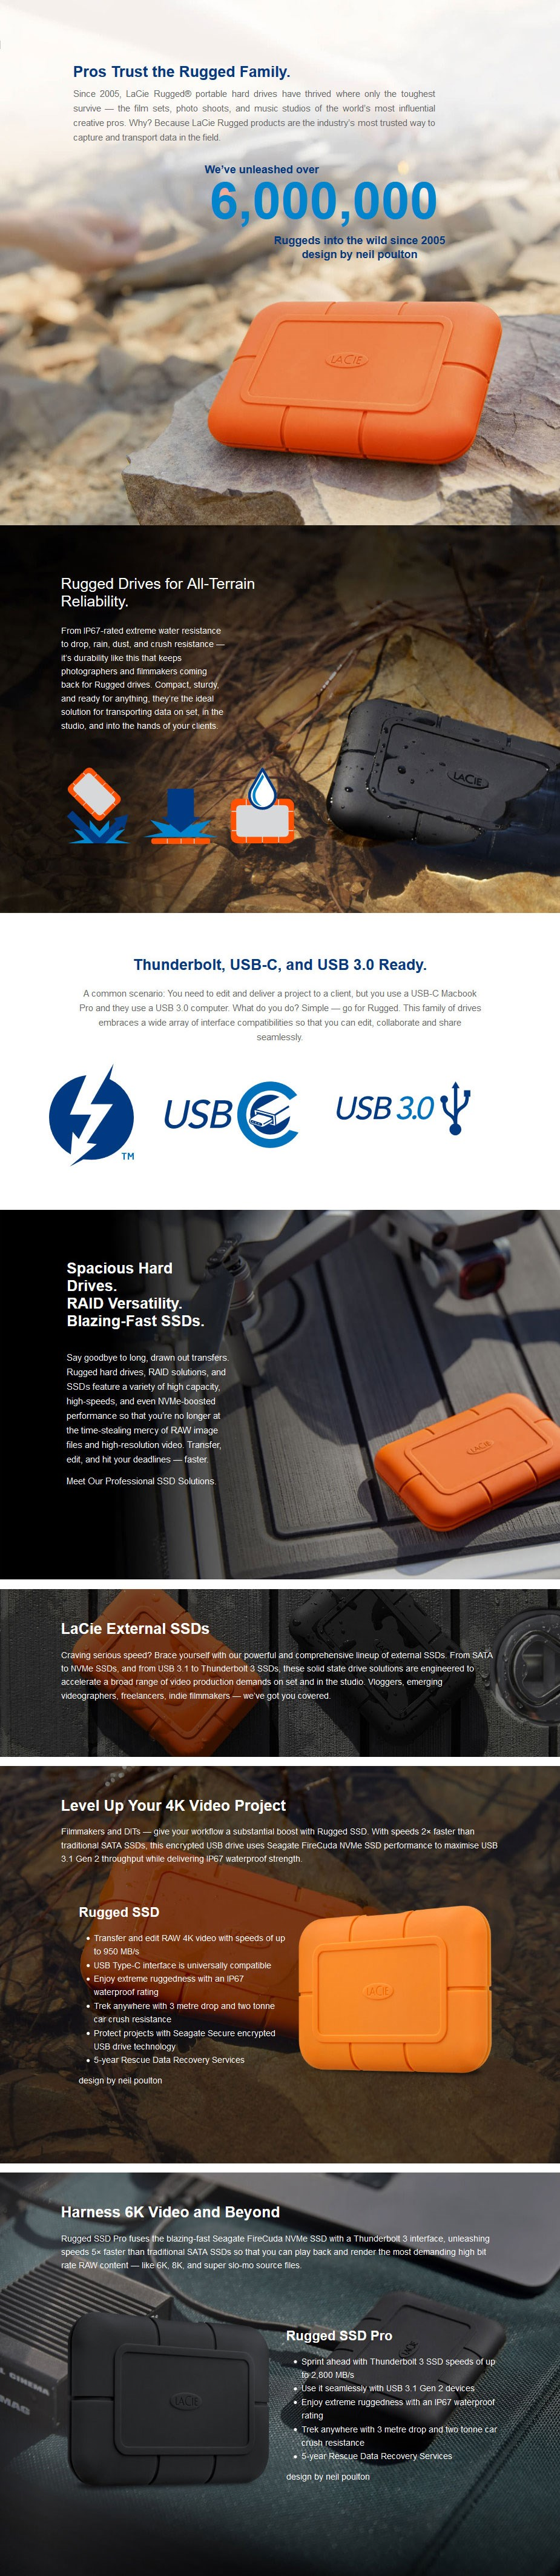 LaCie 500GB Rugged USB 3.1 Gen 2 Type-C Portable External SSD - Desktop Overview 1